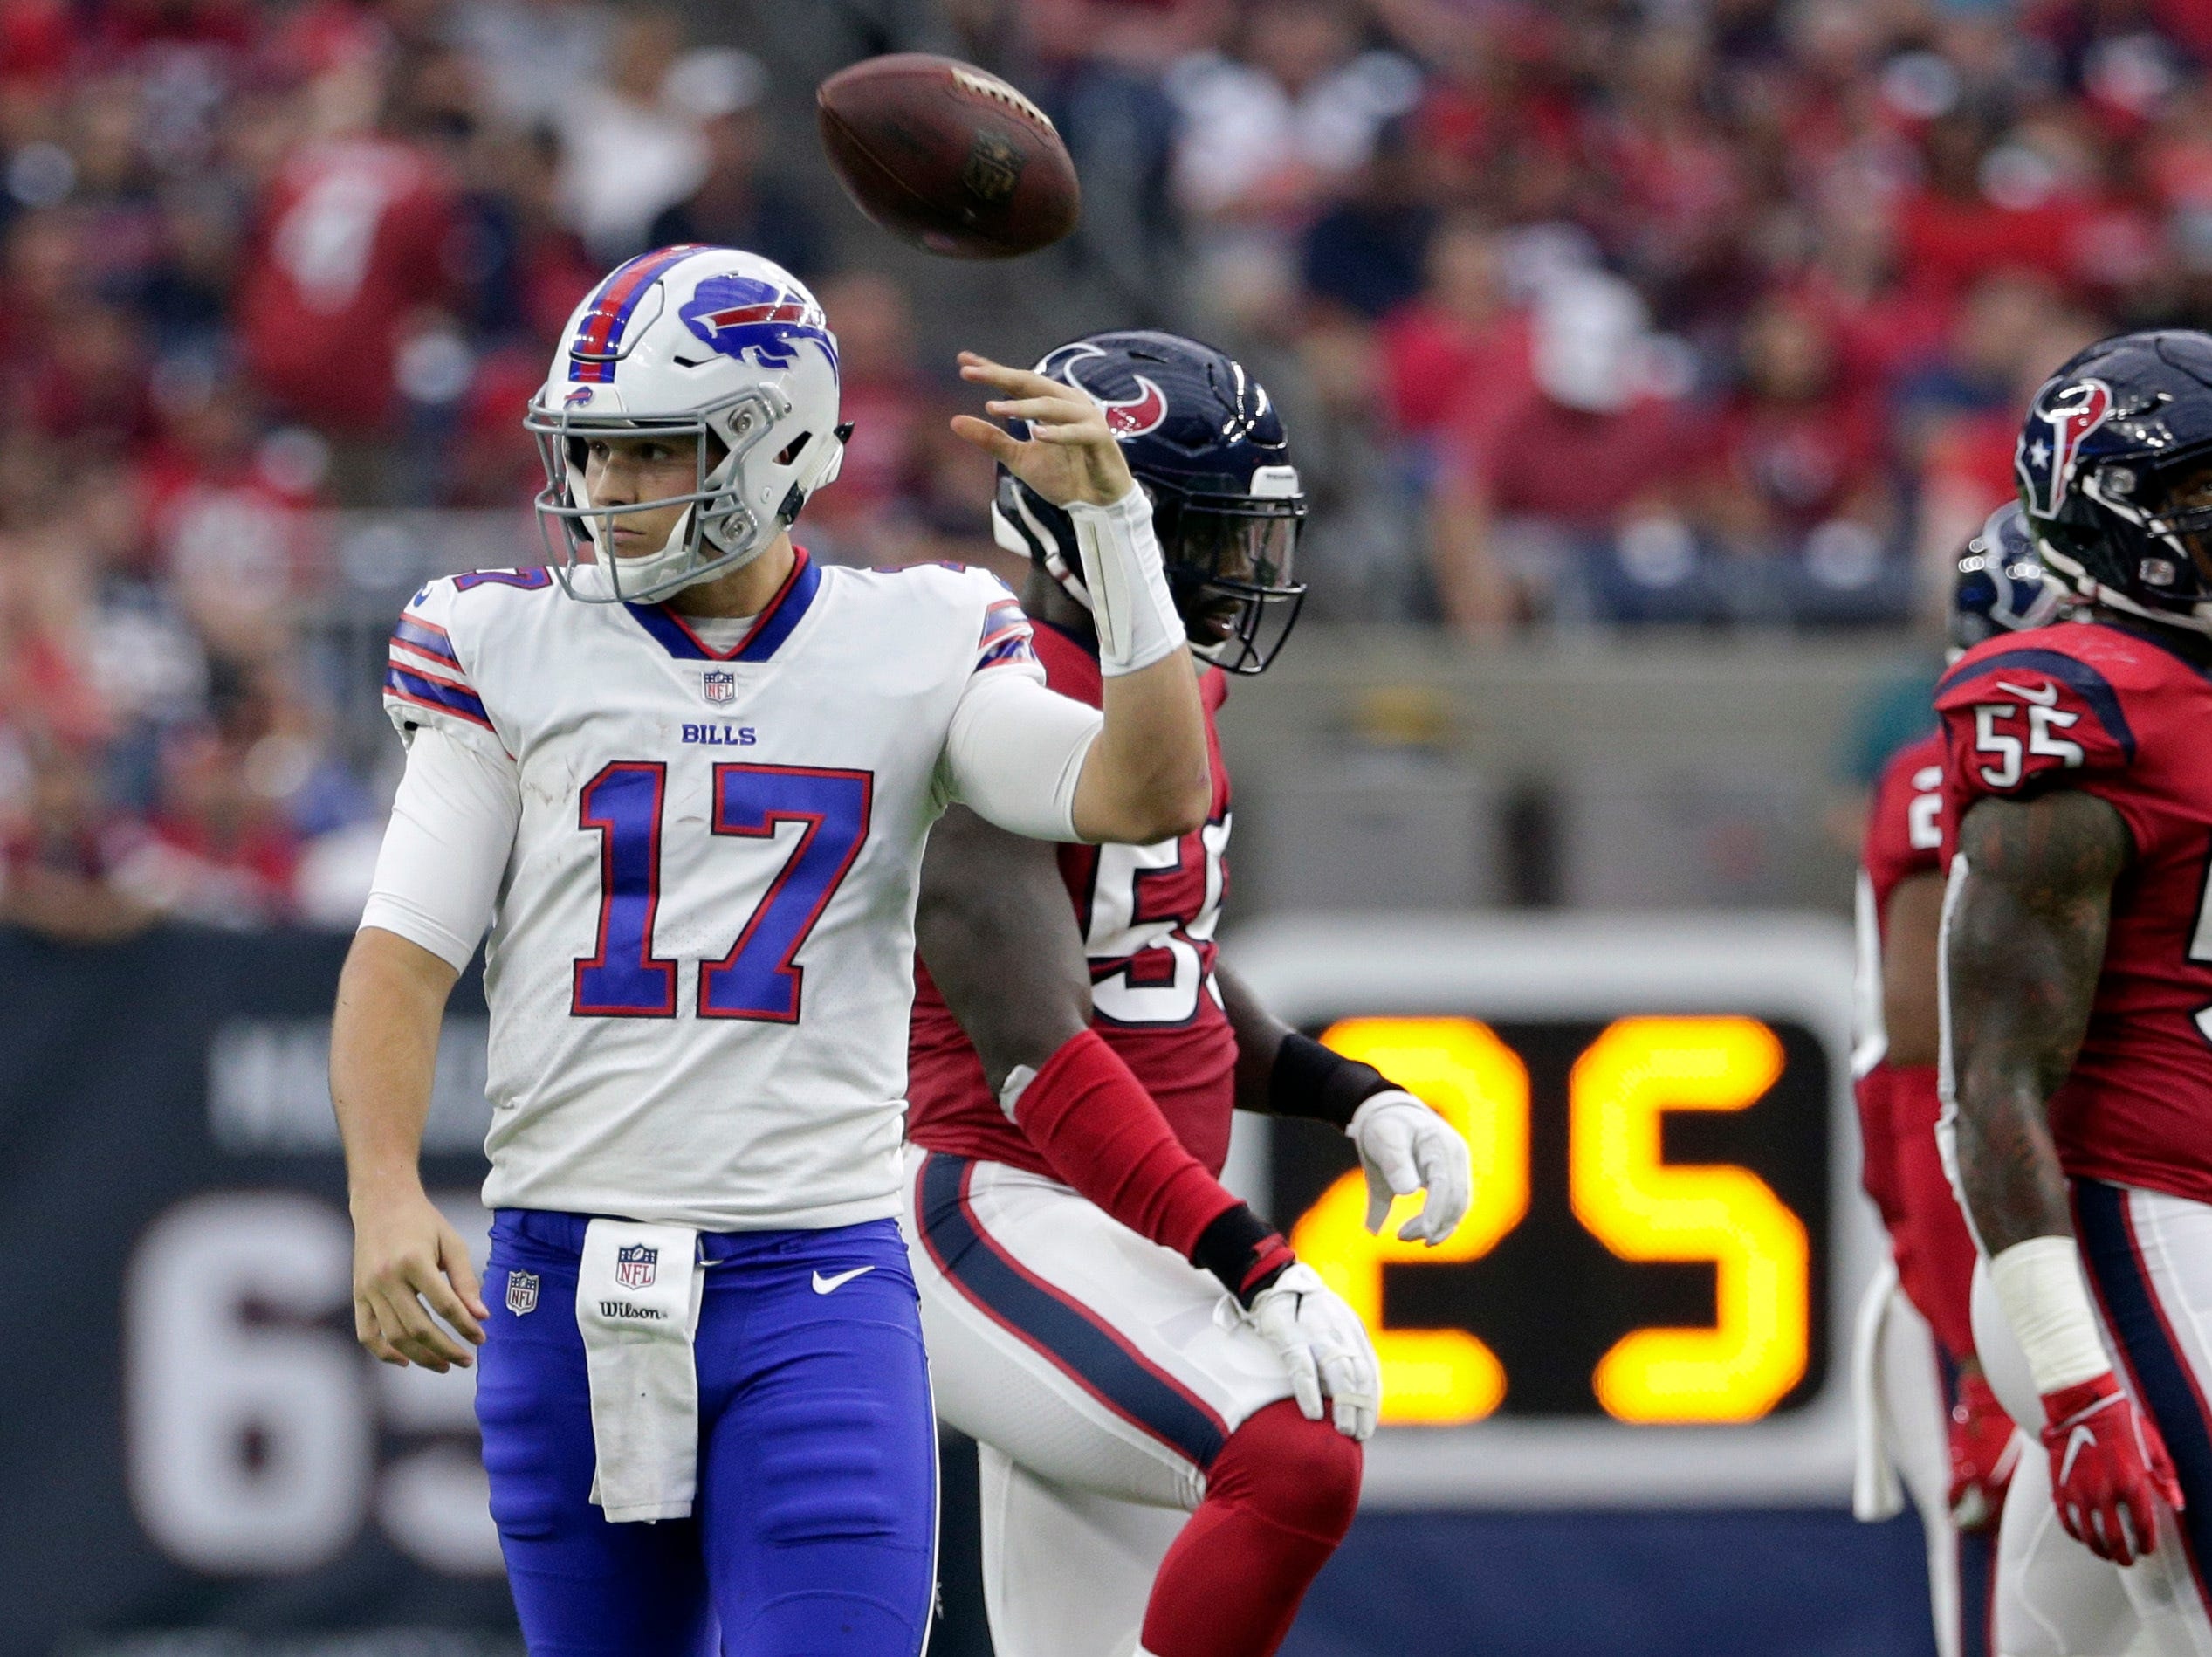 Buffalo Bills quarterback Josh Allen (17) tosses the ball back after he was sacked during the first half of an NFL football game against the Houston Texans, Sunday, Oct. 14, 2018, in Houston. (AP Photo/Michael Wyke)